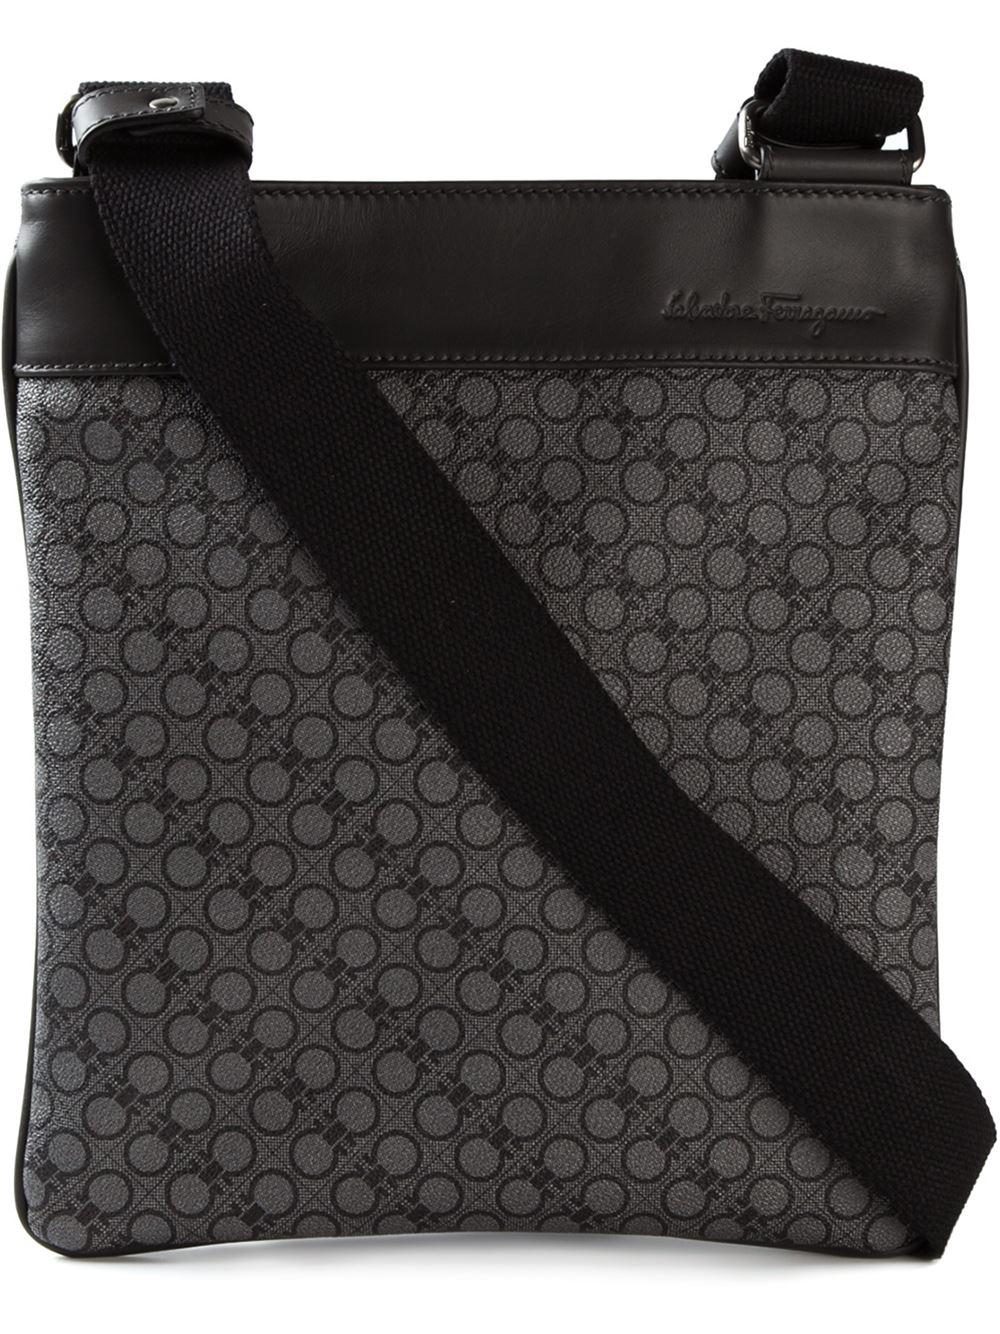 e033e0419bb Lyst - Ferragamo Gancini Print Shoulder Bag in Black for Men